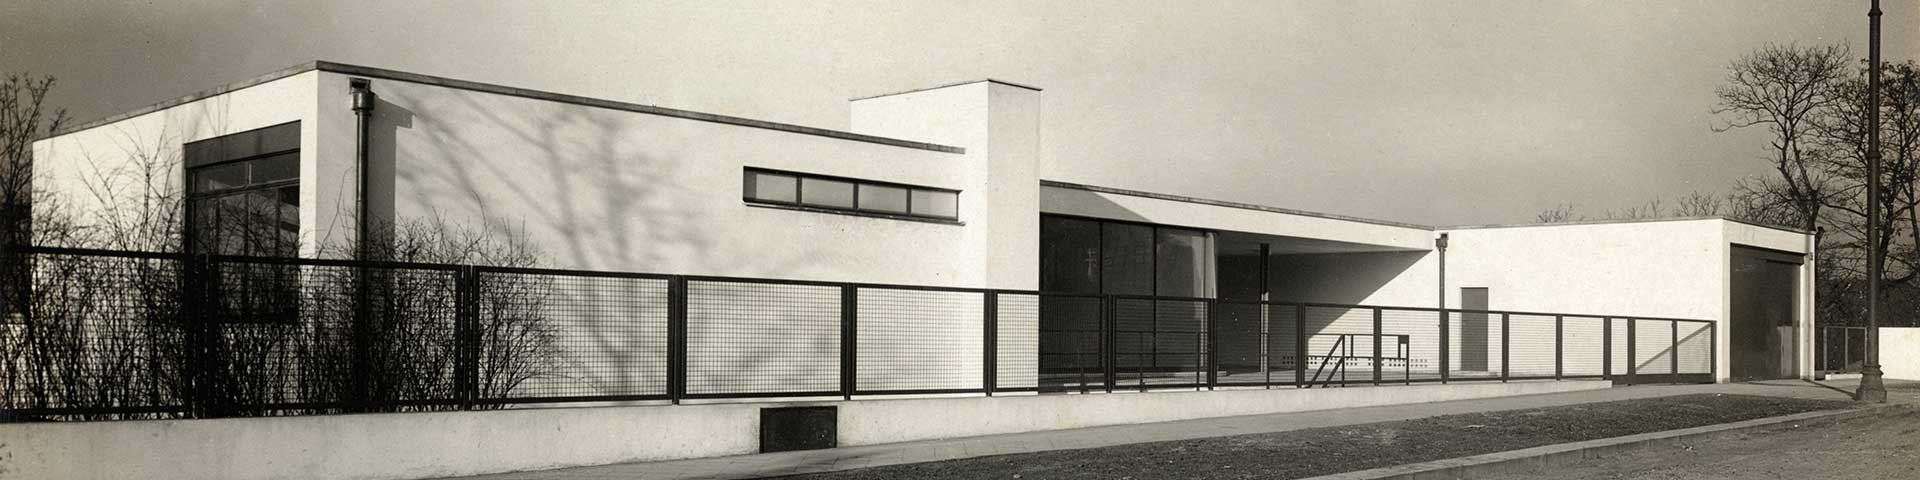 haus tugendhat a film by dieter reifarth metalocus. Black Bedroom Furniture Sets. Home Design Ideas